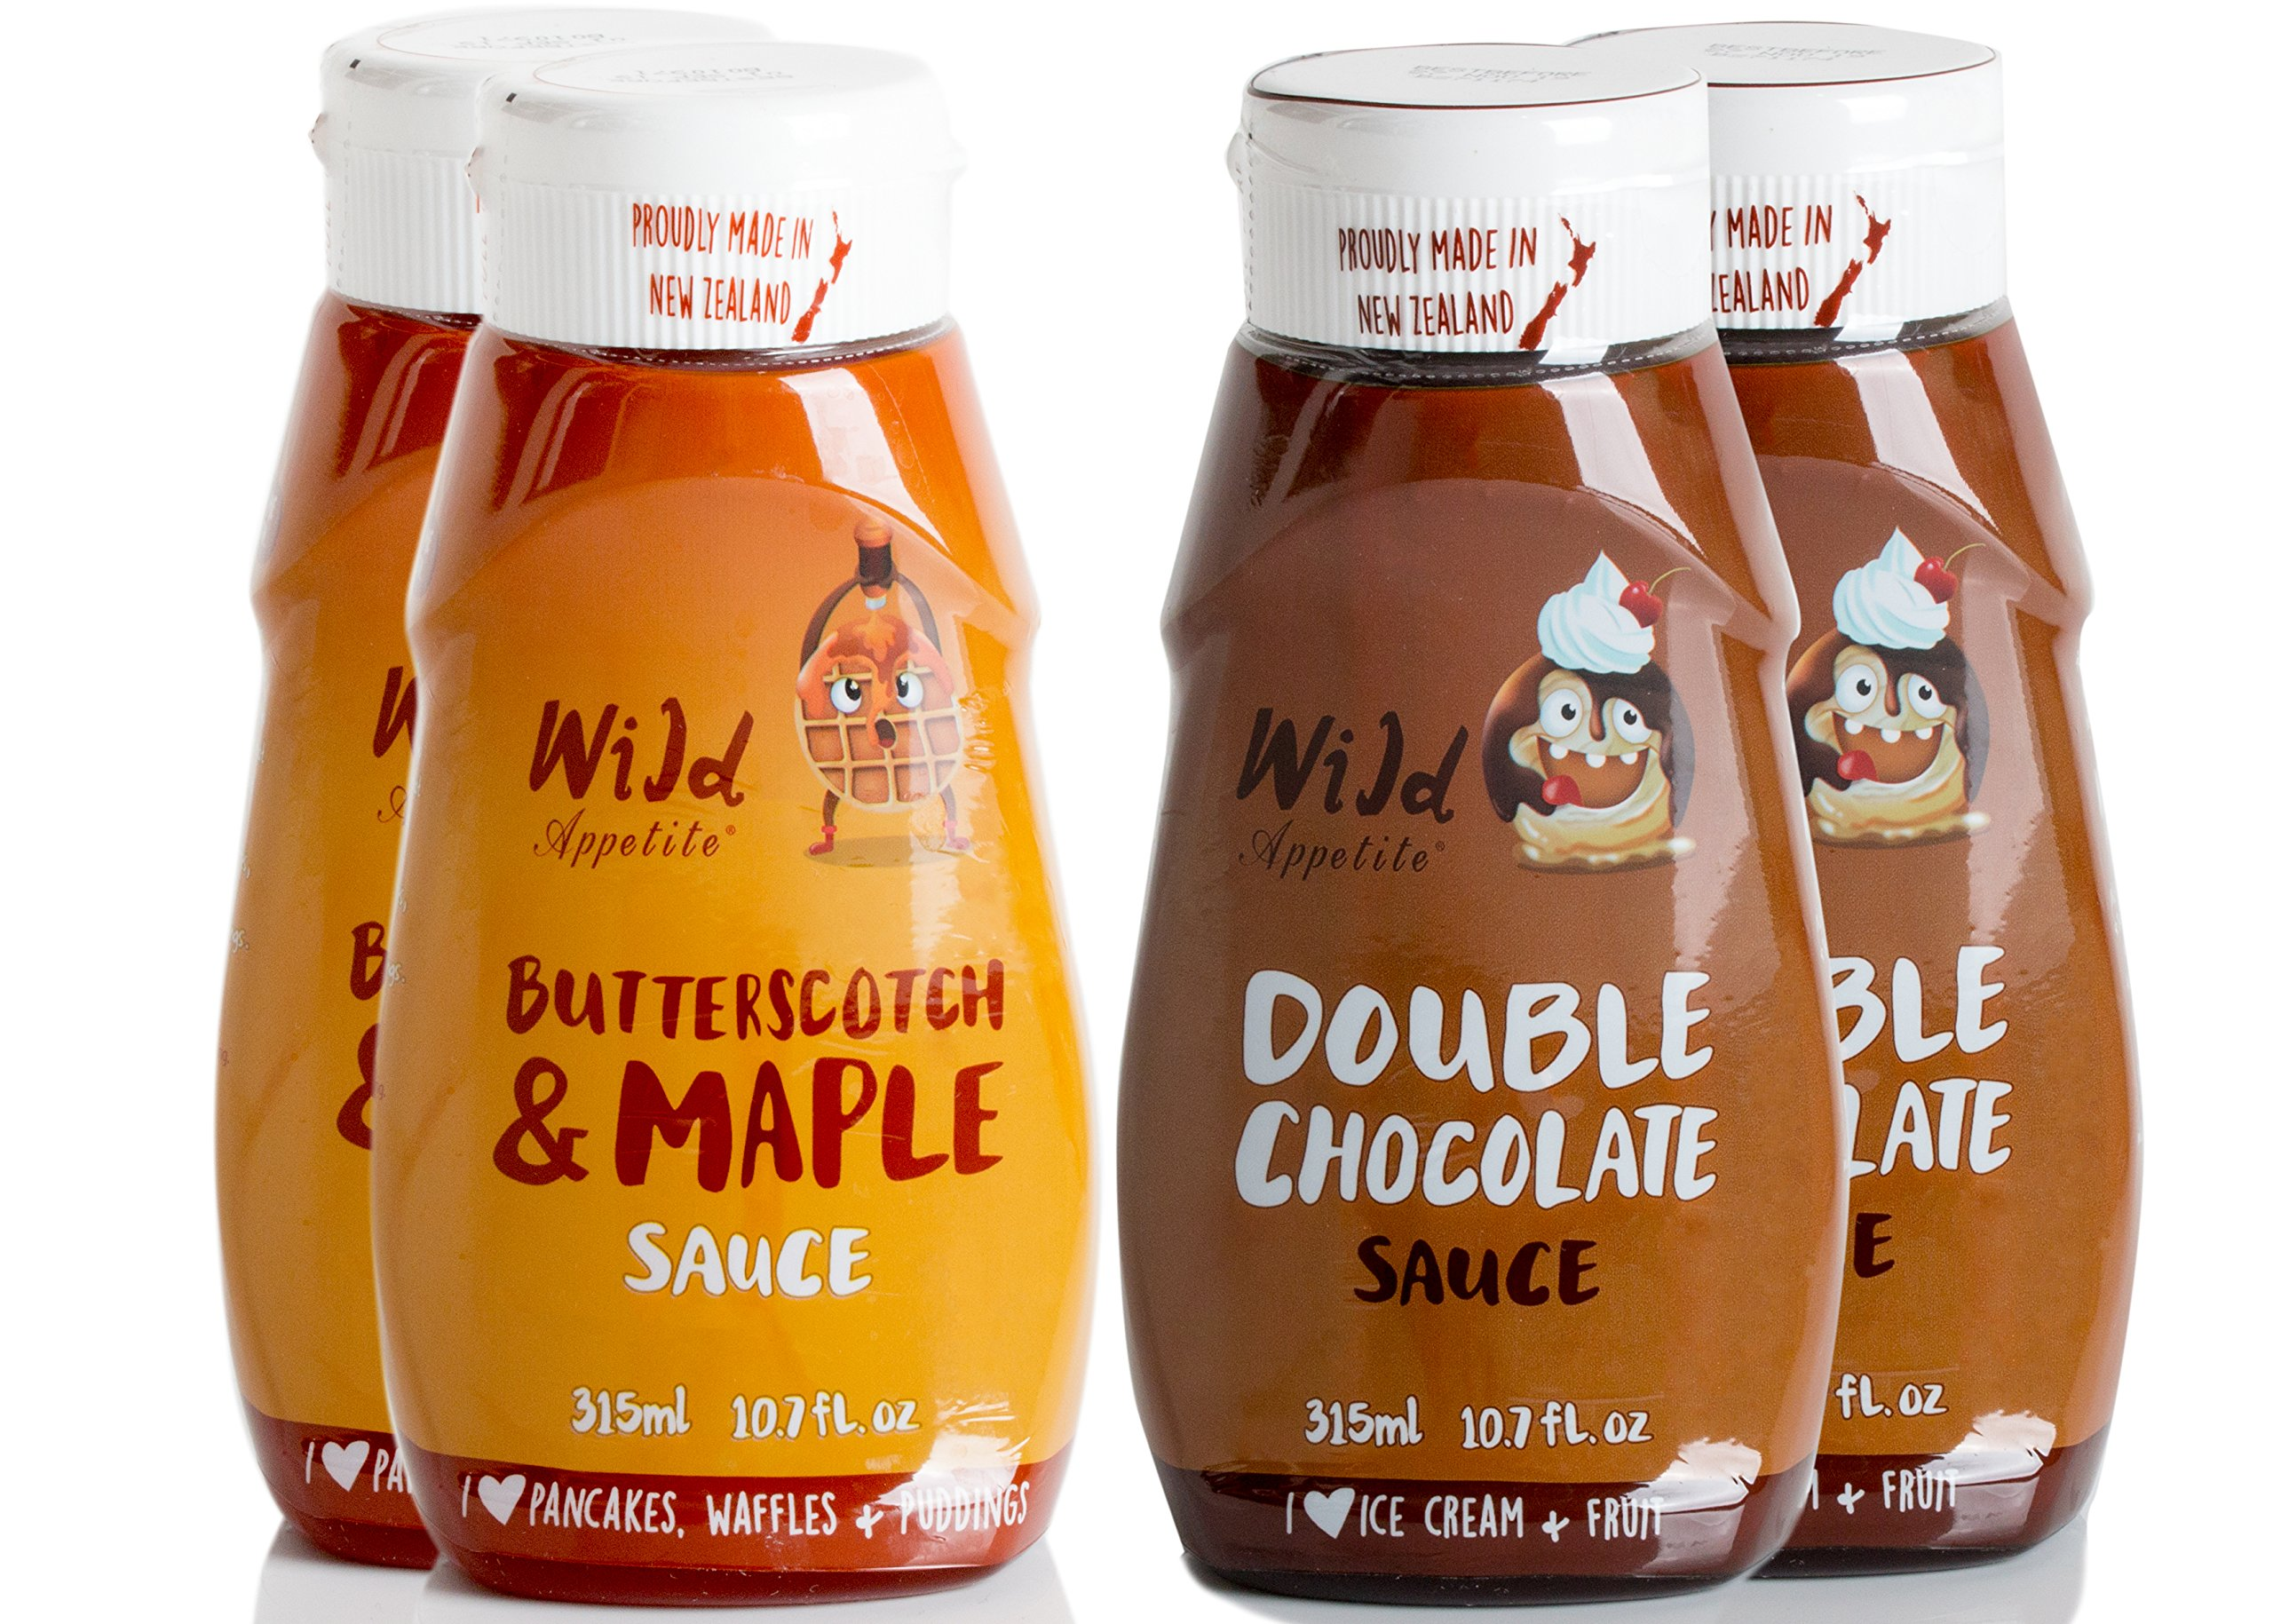 Wild Appetite Dessert 4 Pack, 2 x Double Chocolate Sauce and 2 x Butterscotch & Maple Sauce, 4 x 315ml (10.6oz) by Wild Appetite